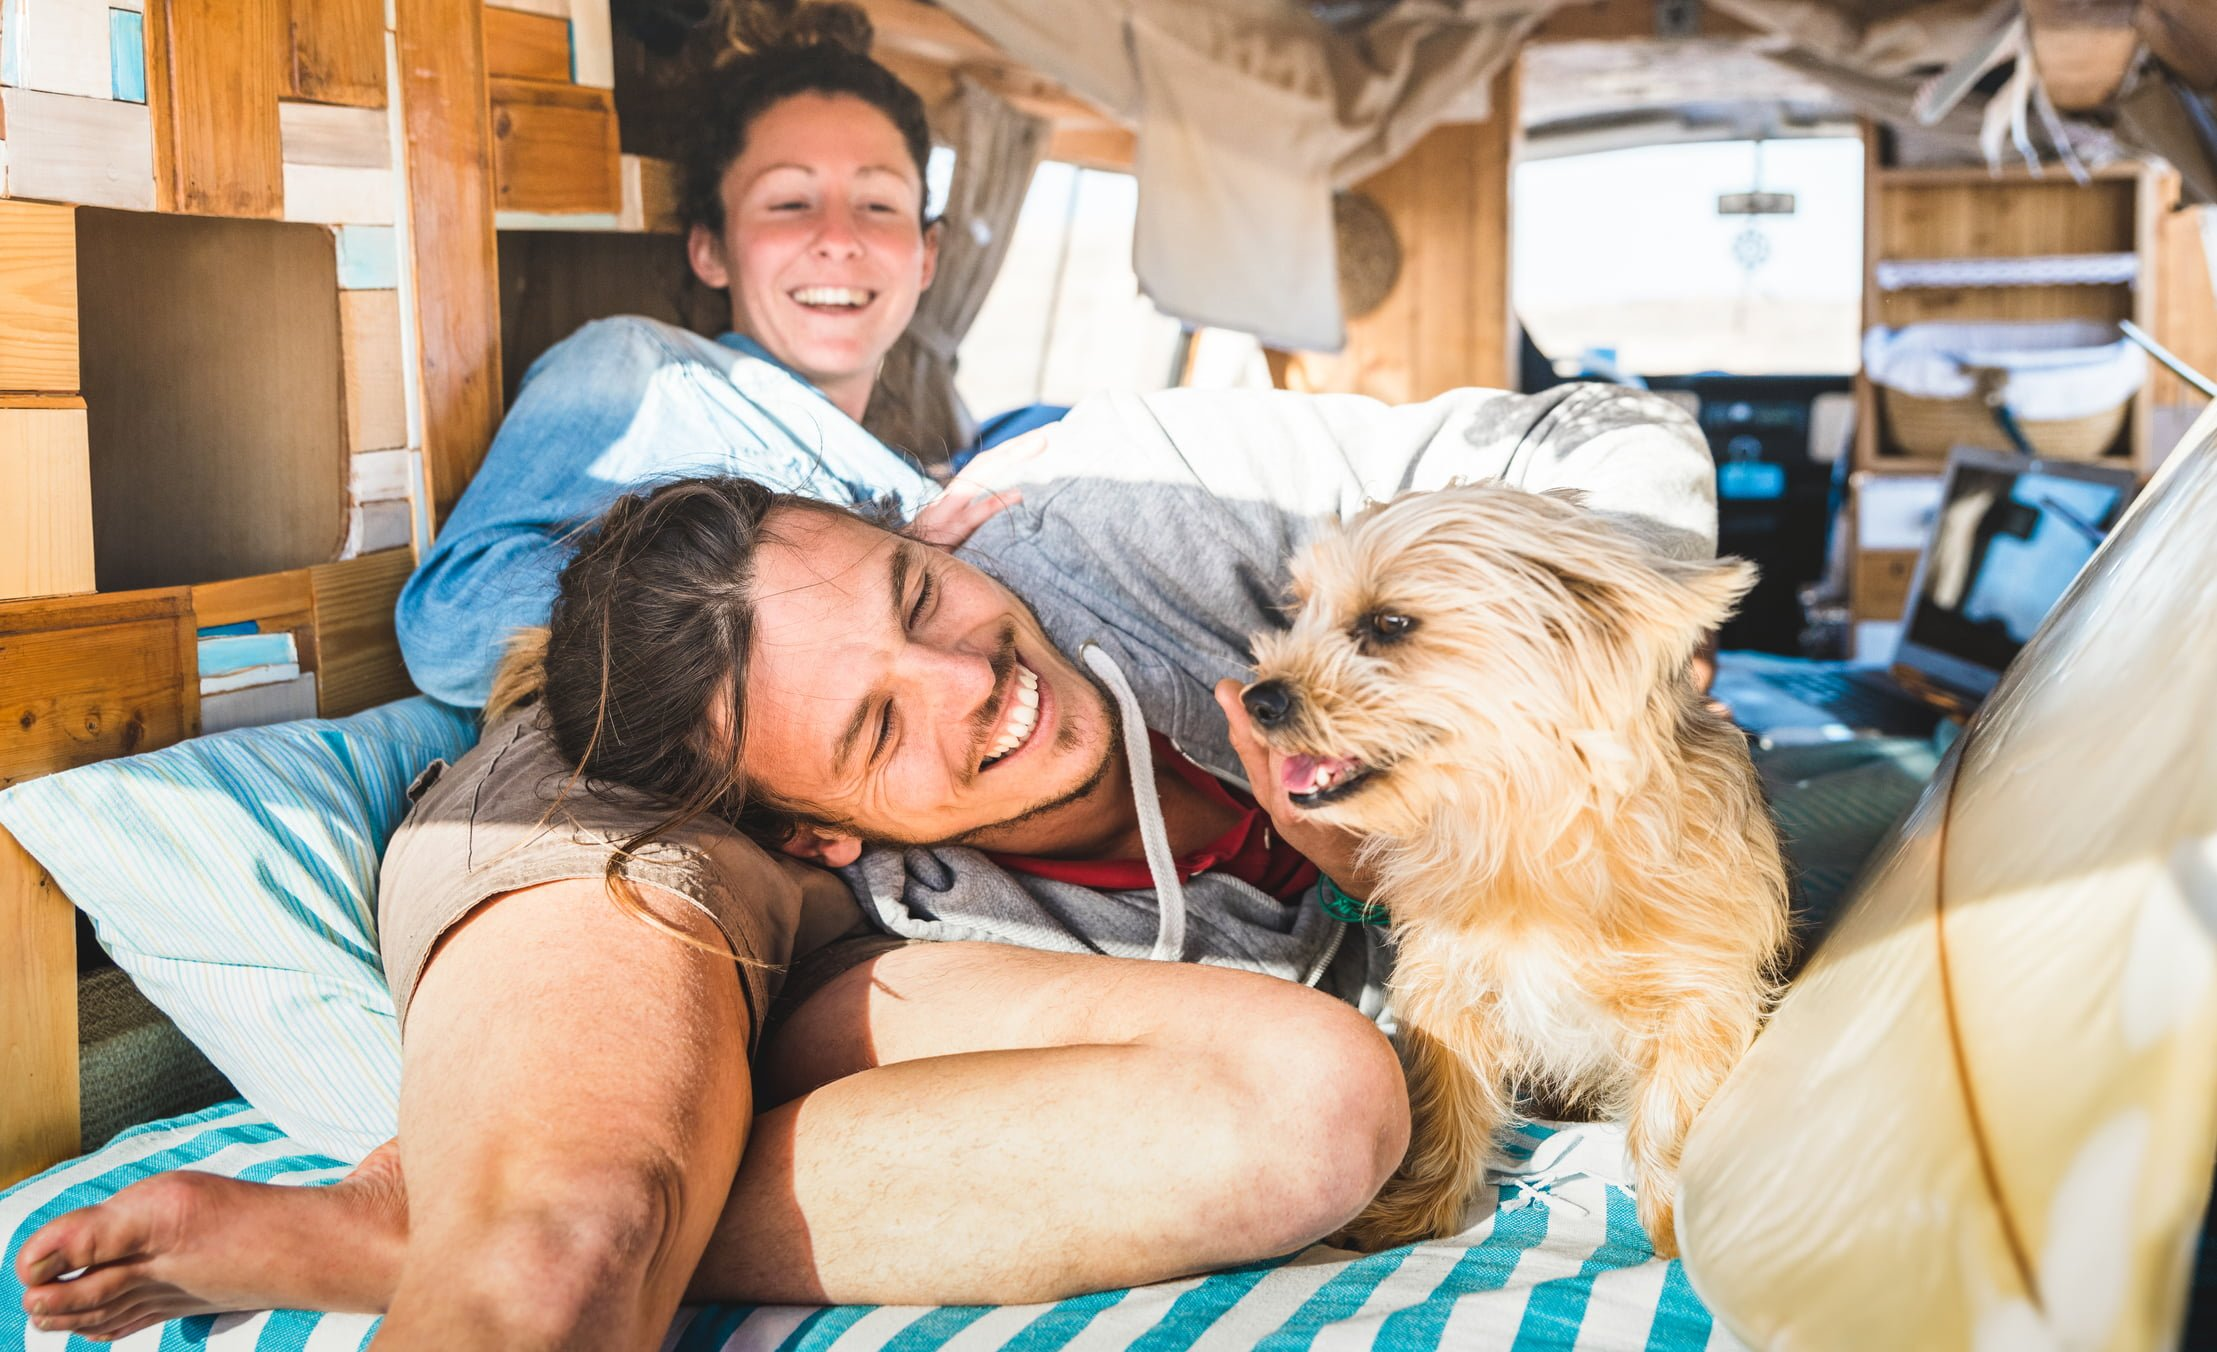 Hippie couple with funny dog traveling together on vintage minivan transport - Life inspiration concept with indie people on mini van adventure trip in relax moment - Bright warm retro filter